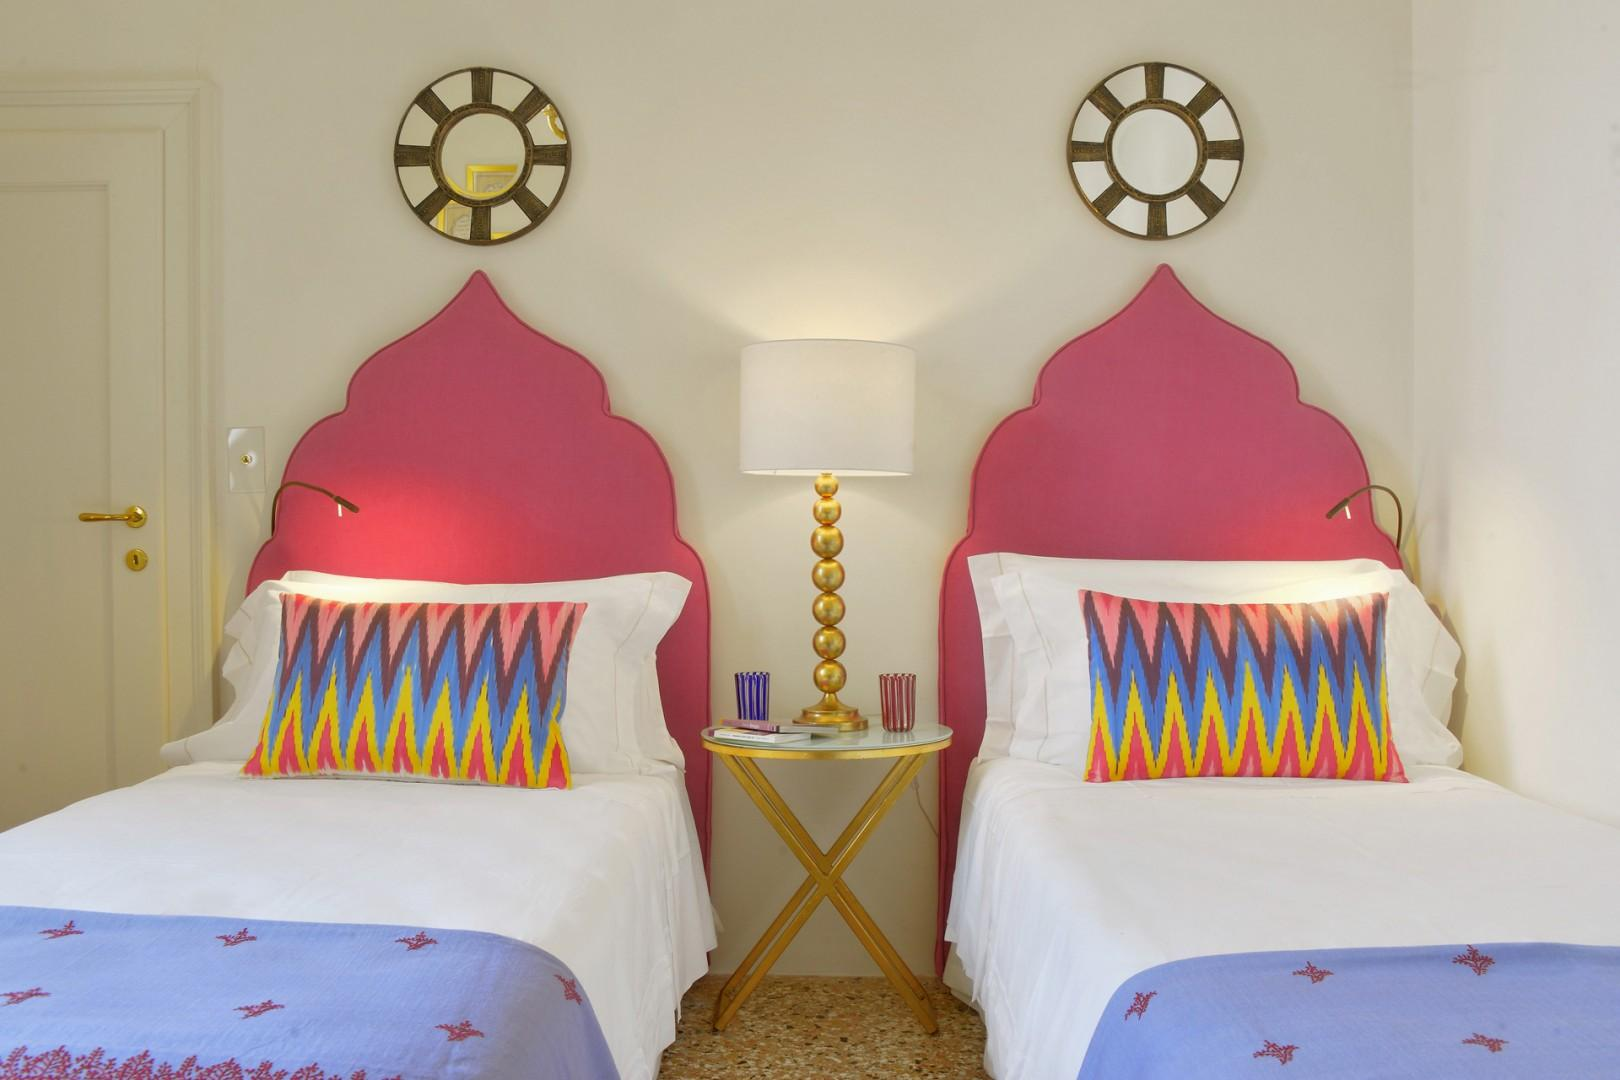 The headboards of bedroom 2 remind us of the byzantine design of Venetian windows.